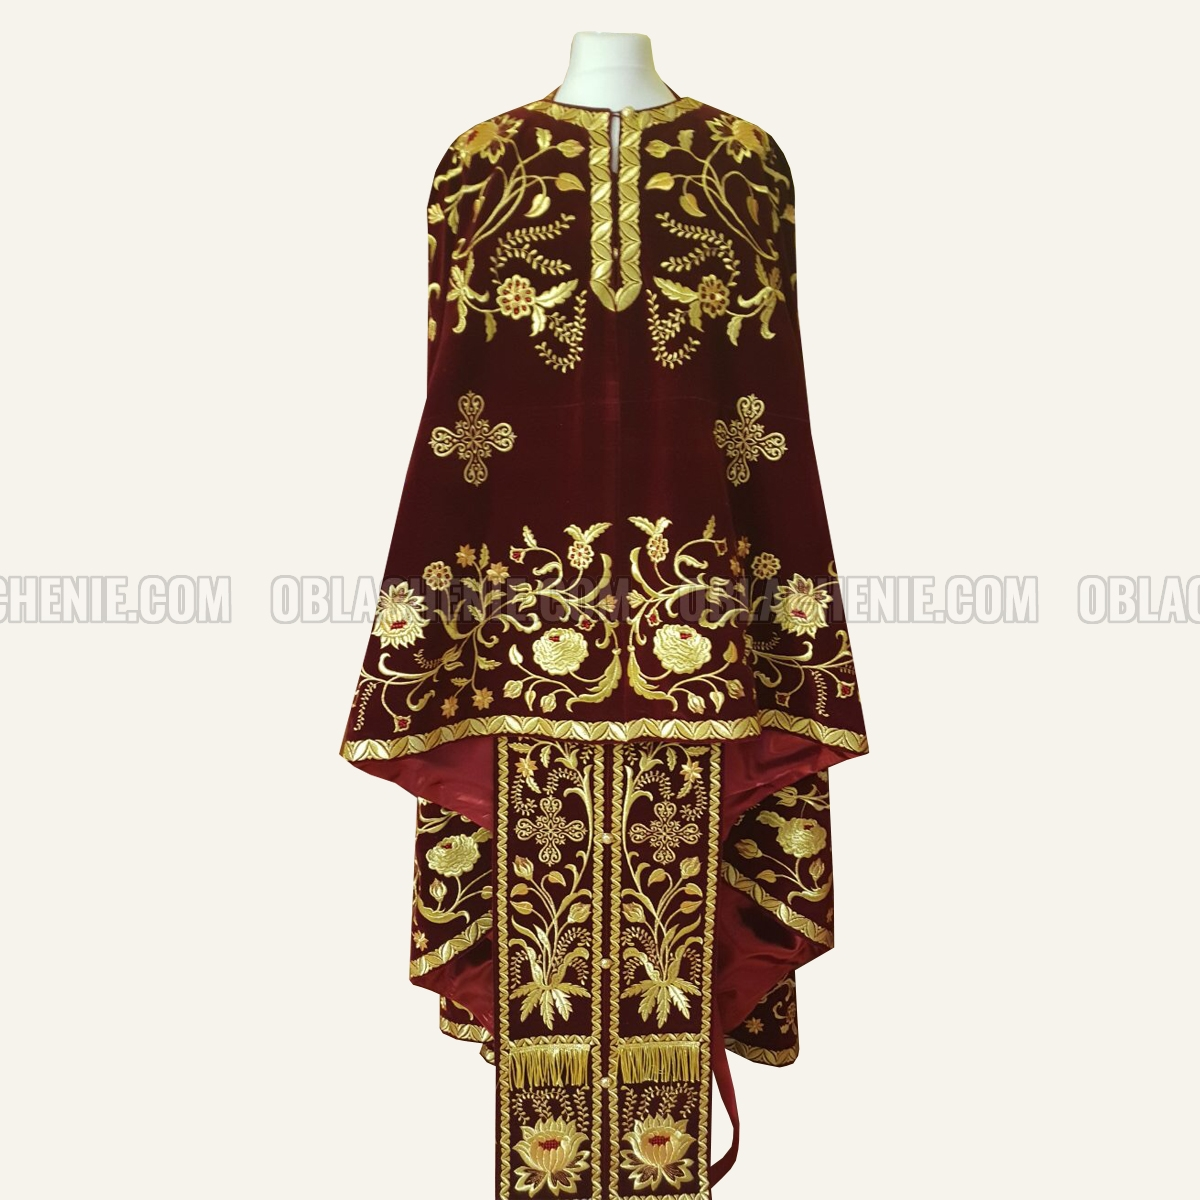 Embroidered priest's vestments 10187